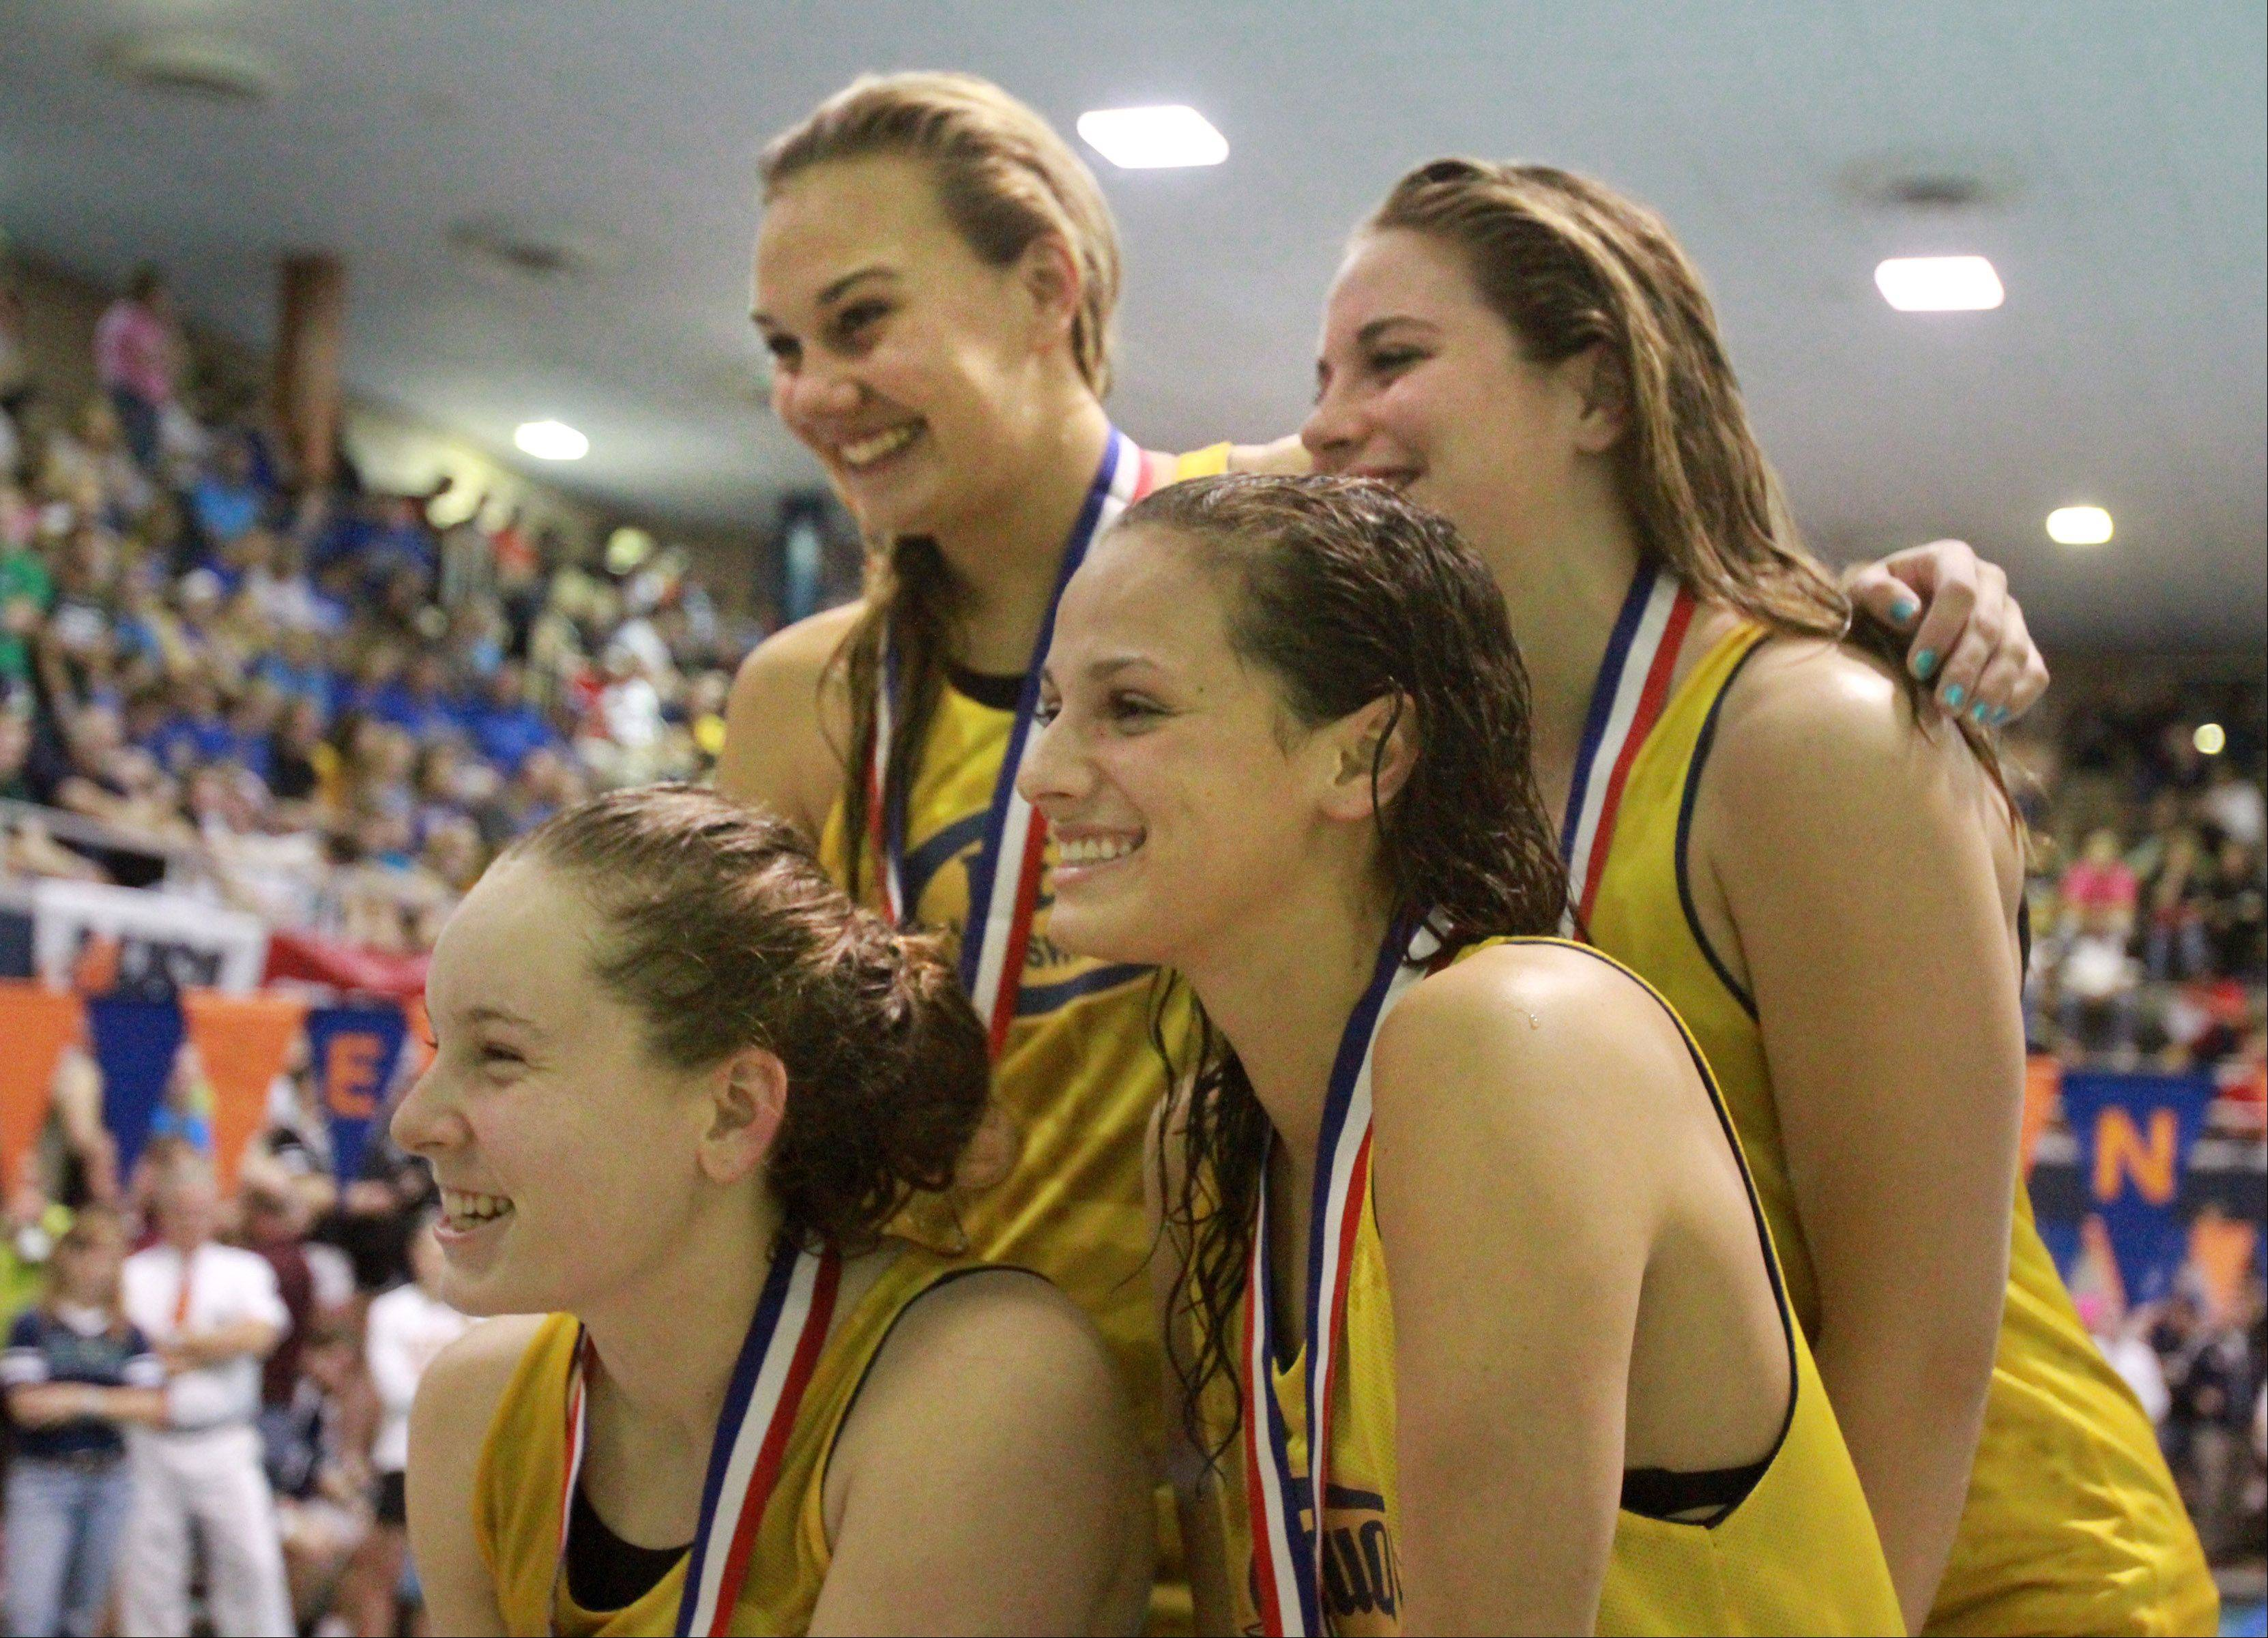 Nequa Valley's Natalie McGovern, Megan Childs, Gia Dalesandro, and Riley Schroedter tied for third place in the 200-yard medley relay at the IHSA state championships in Evanston on Saturday.